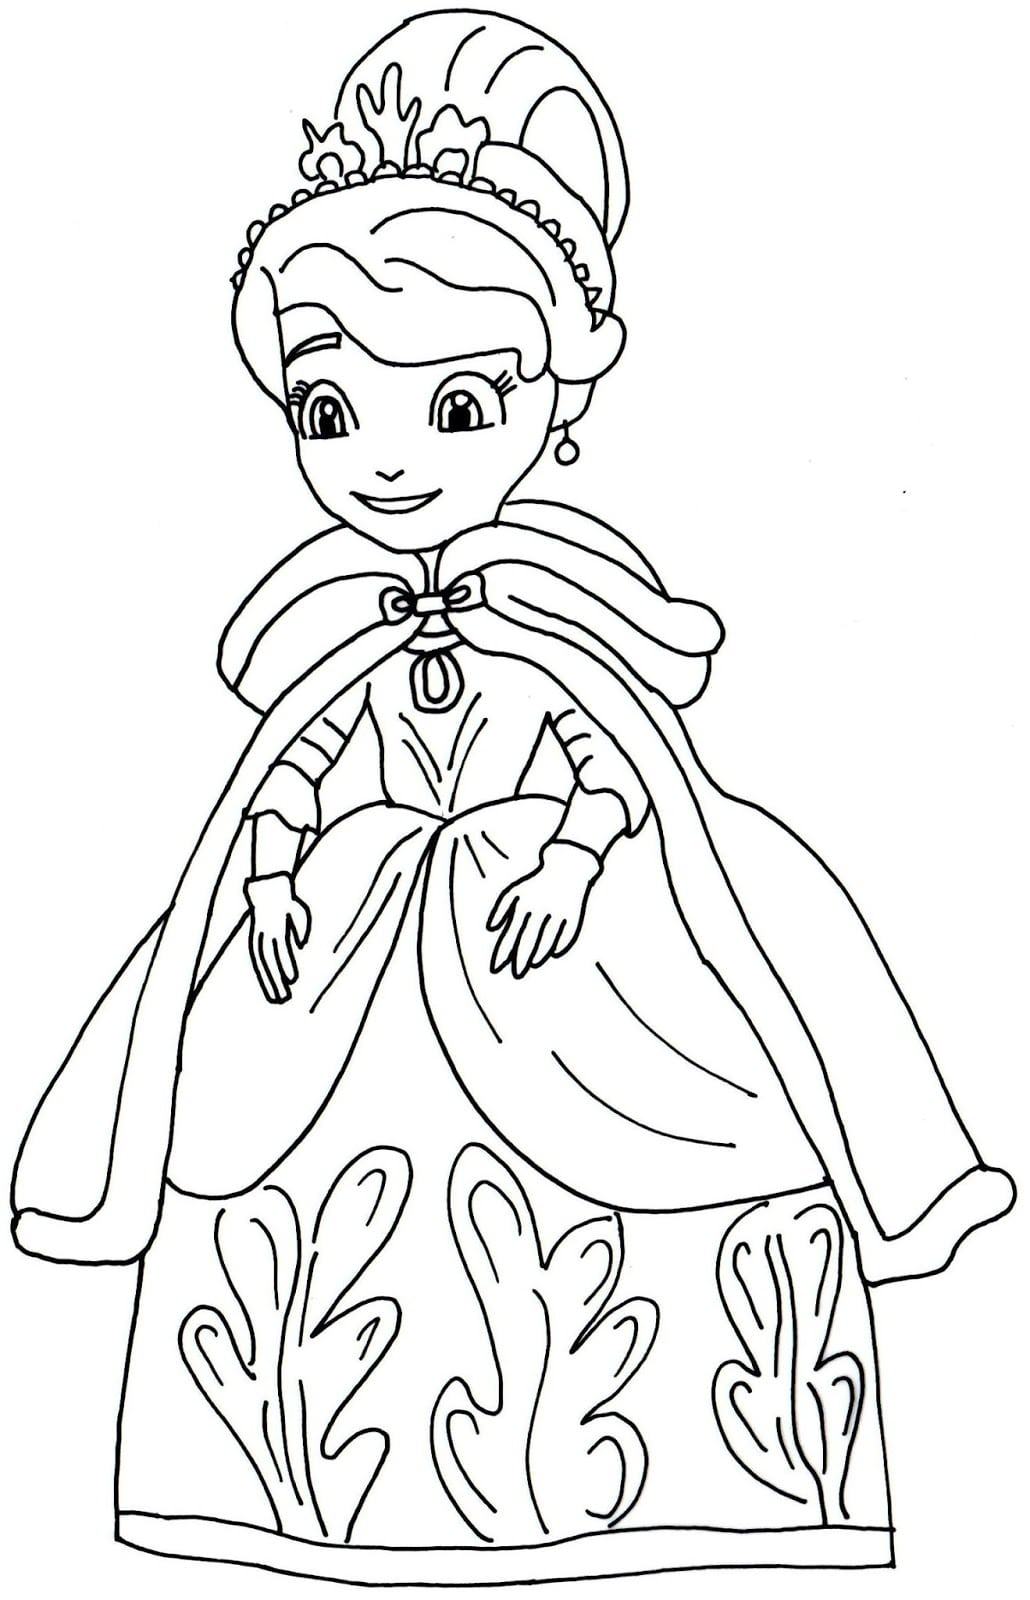 9 Sofia The First Coloring Pages, Disney Sofia The First Coloring